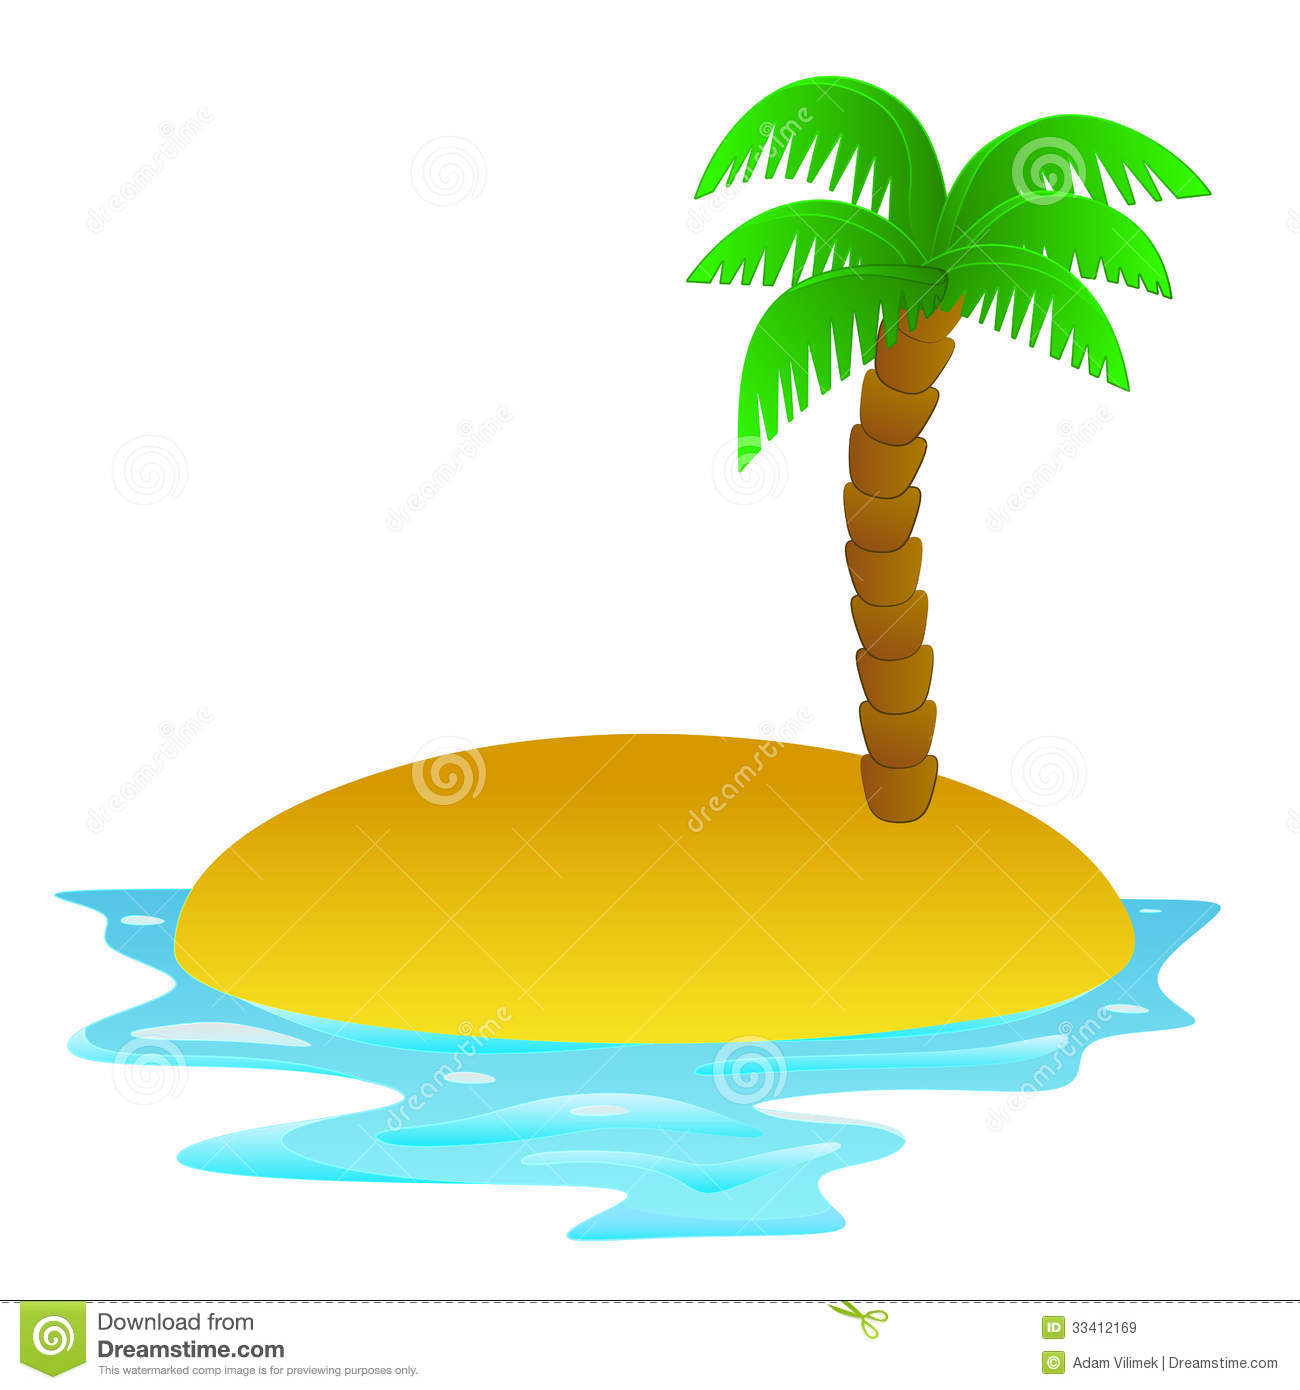 Tropical island images free clipart clip art transparent stock Tropical Island Vacation Clipart - Free Clipart clip art transparent stock